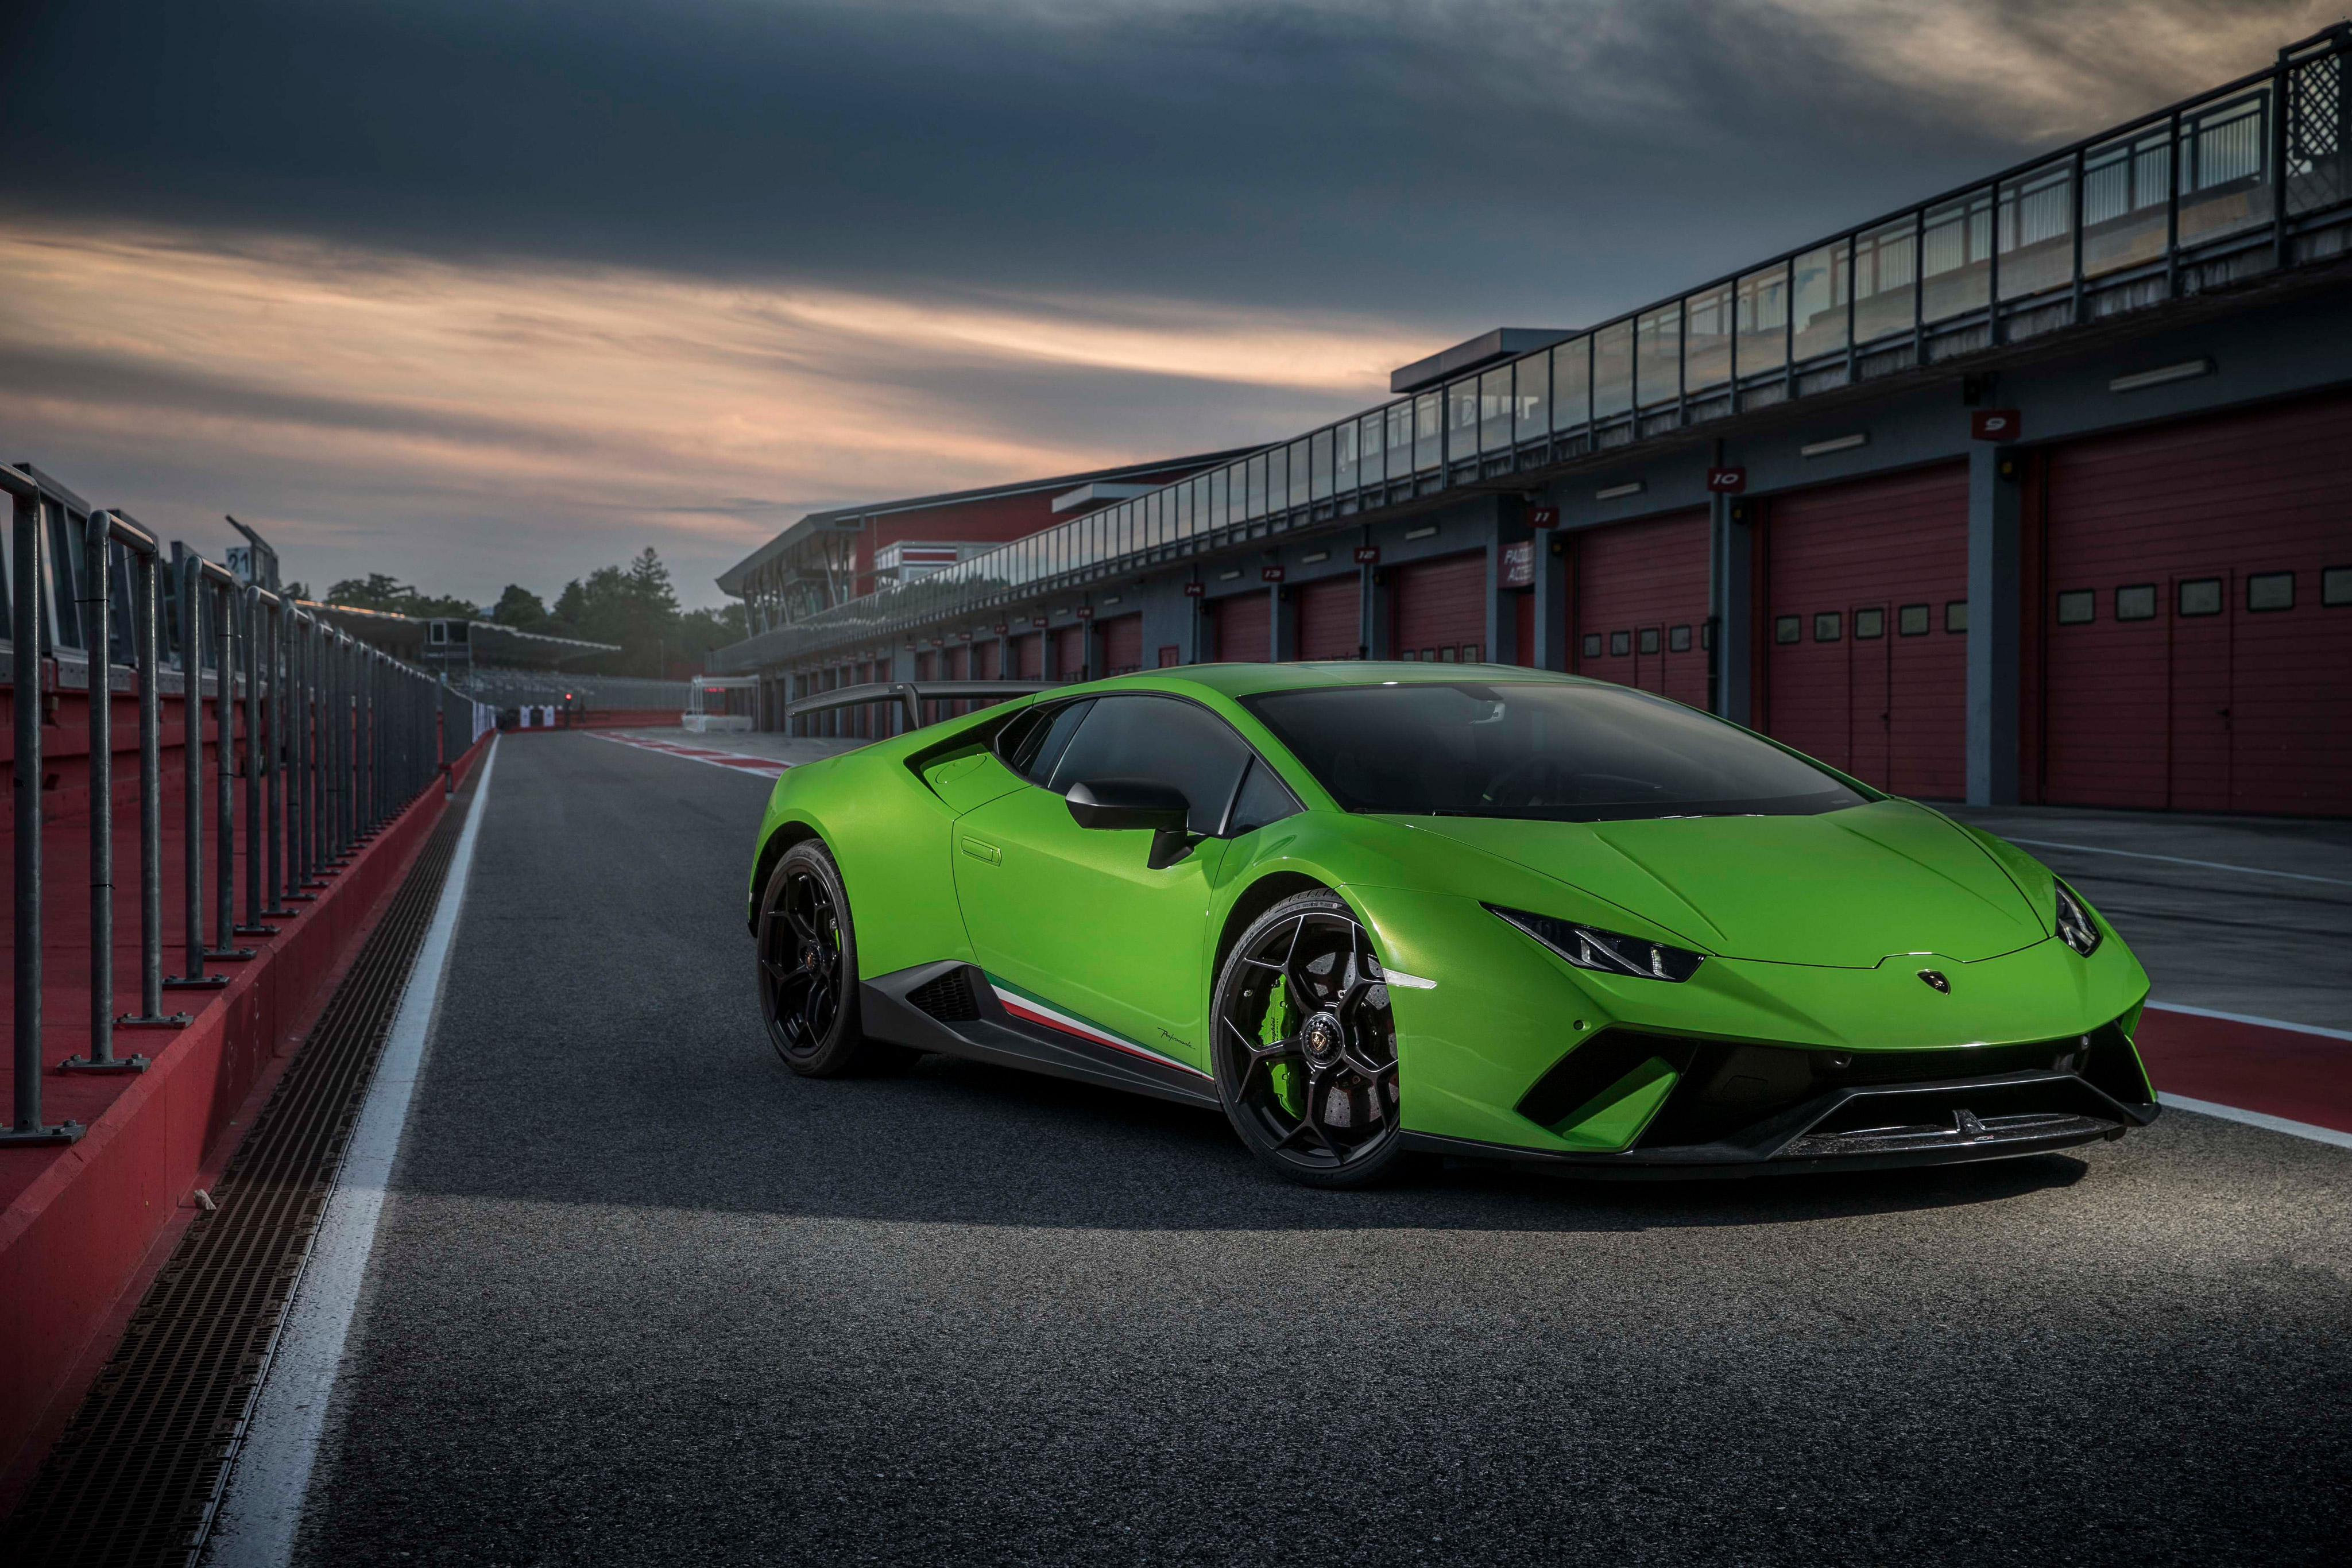 2018 Lamborghini Huracan Performante 4k, HD Cars, 4k